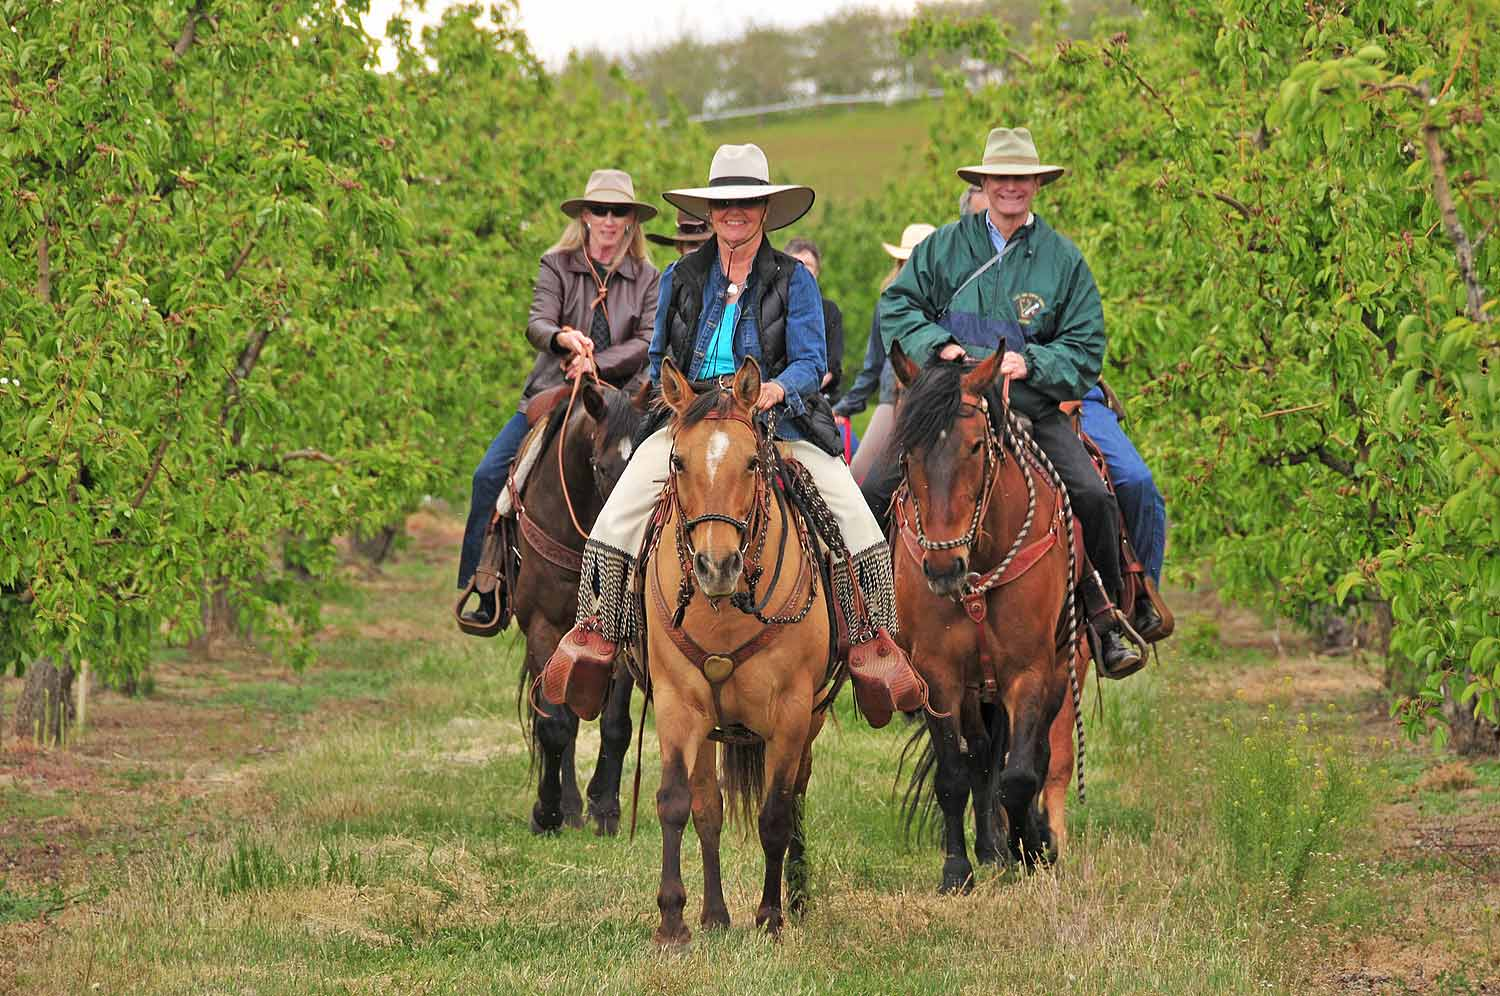 Hoof it through the wine country with Trail Boss Tiffany Fewel as your guide. Ride through the sun-soaked vineyards surrounding Cherry Wood, stop for tastings at two selected wineries and enjoy a gourmet picnic-style lunch at Cultura Winery